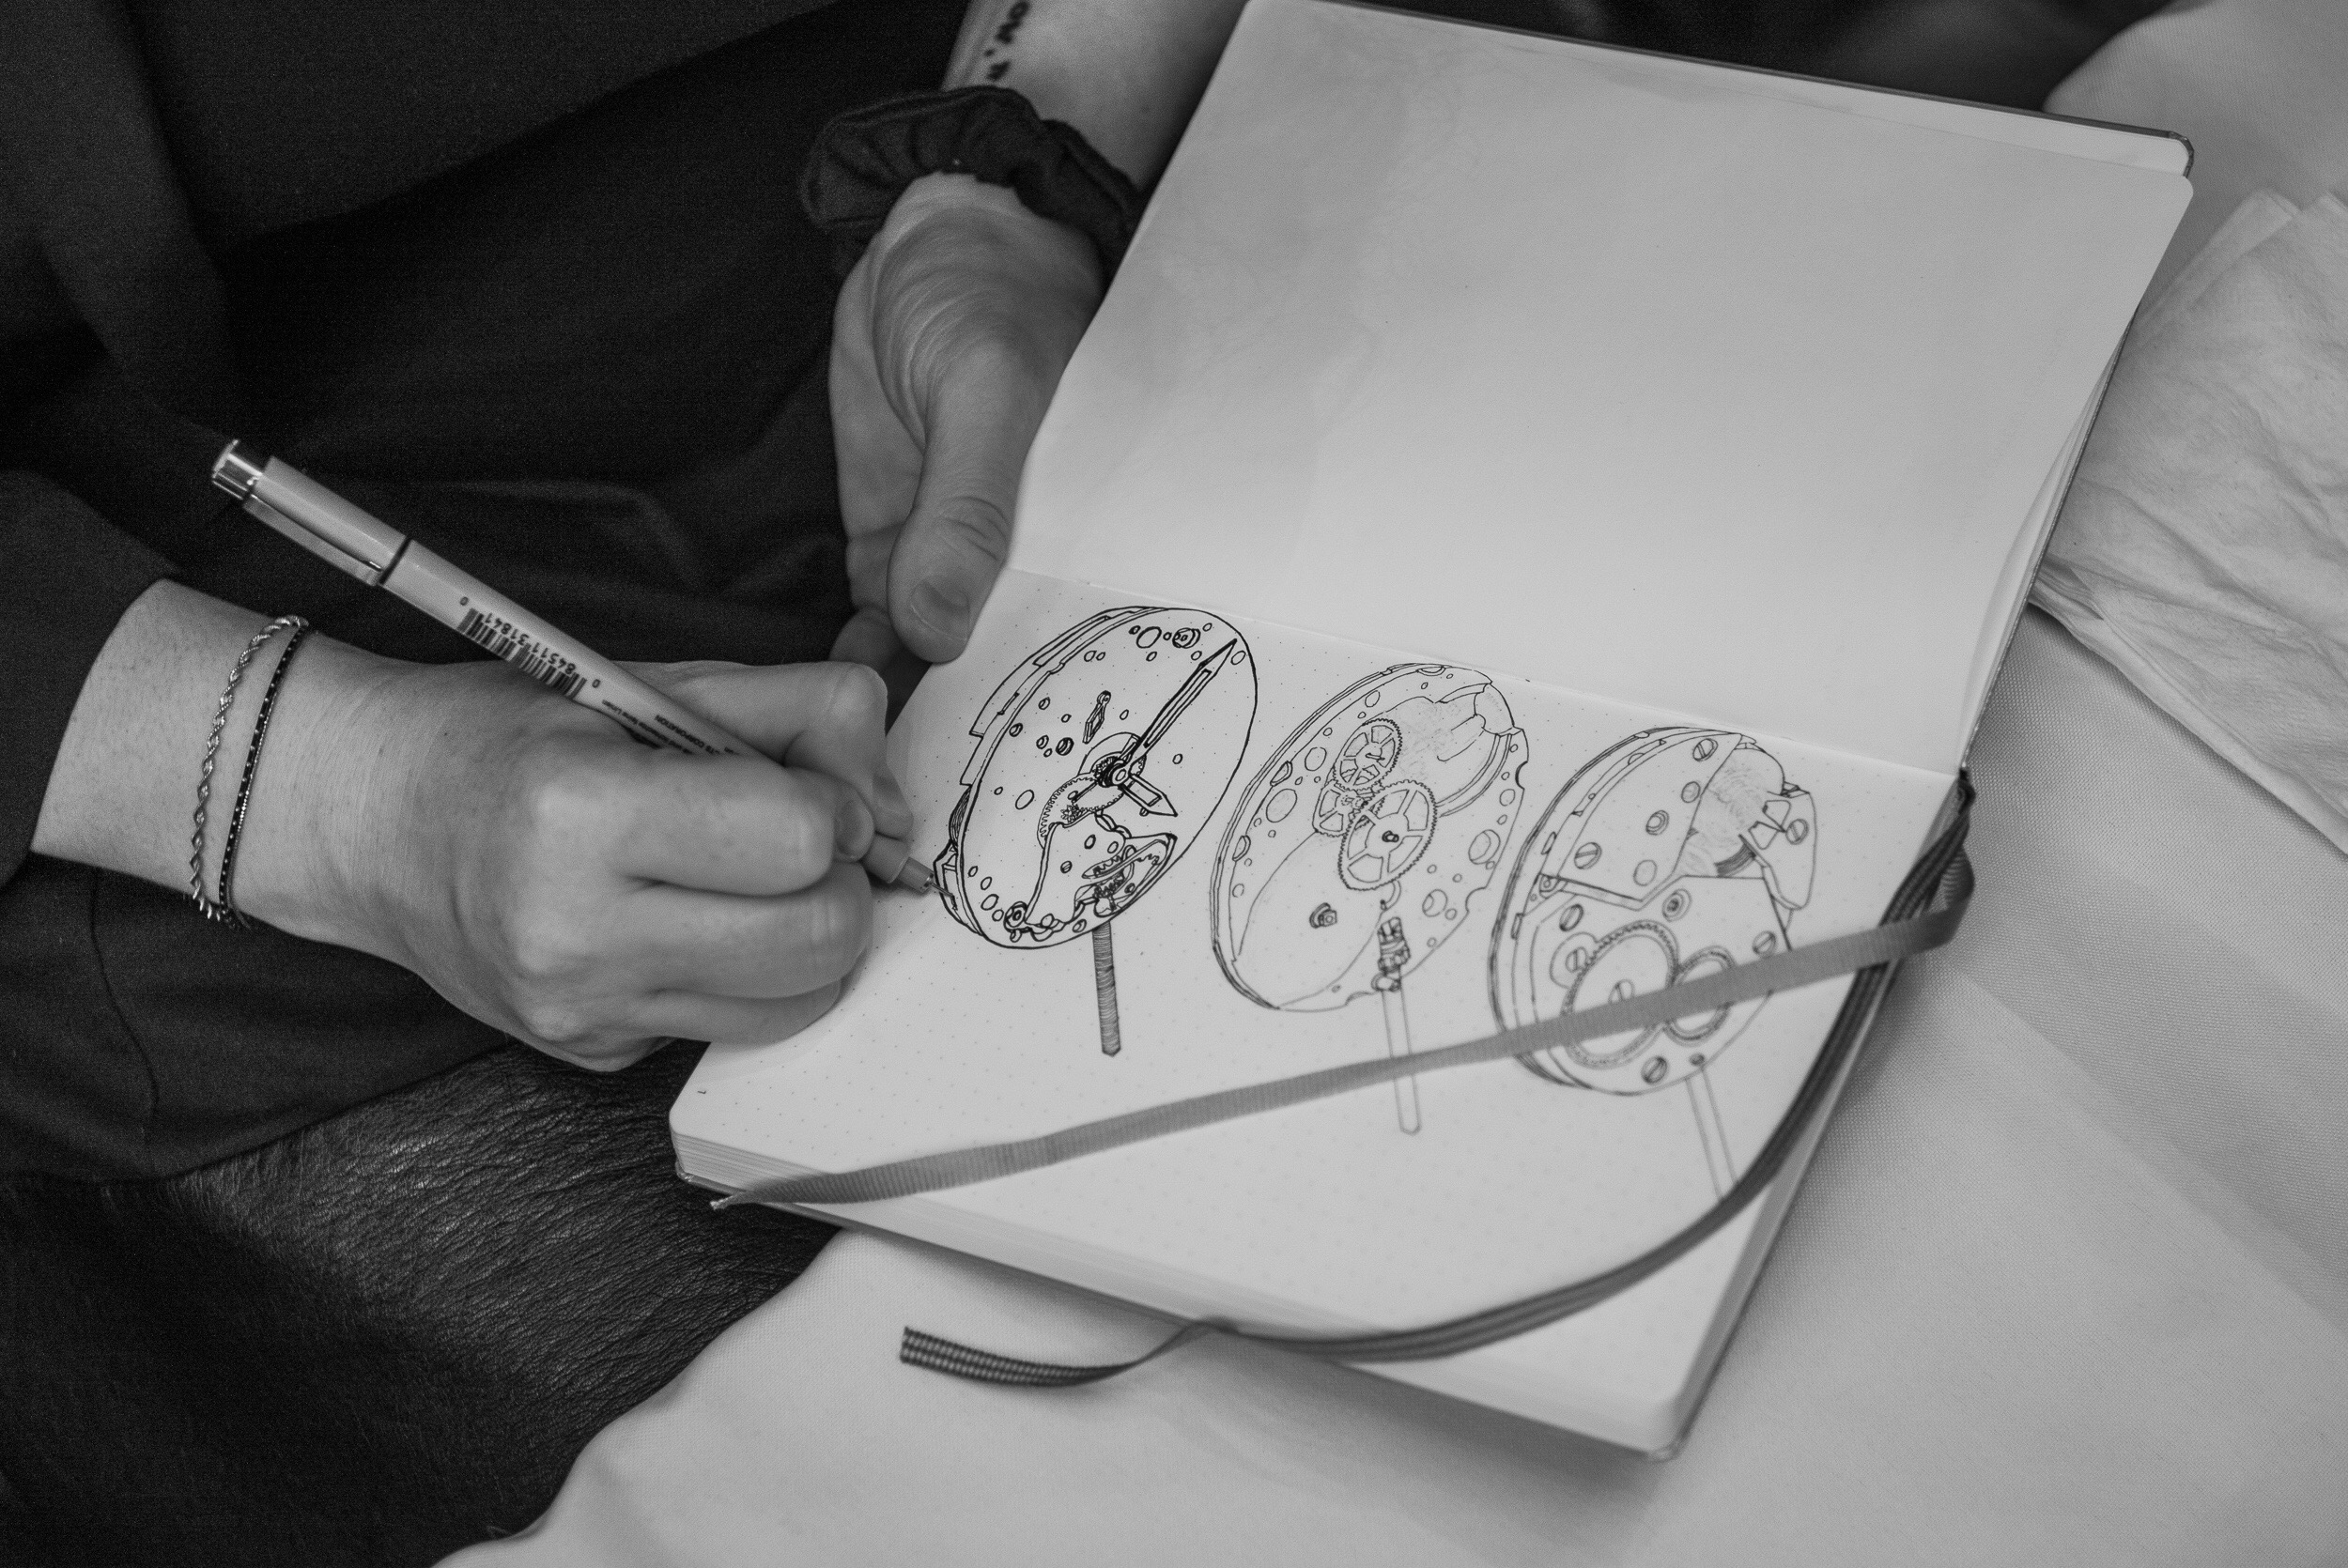 Photo by Atom Moore (NYC RedBar member caught drawing during the event)